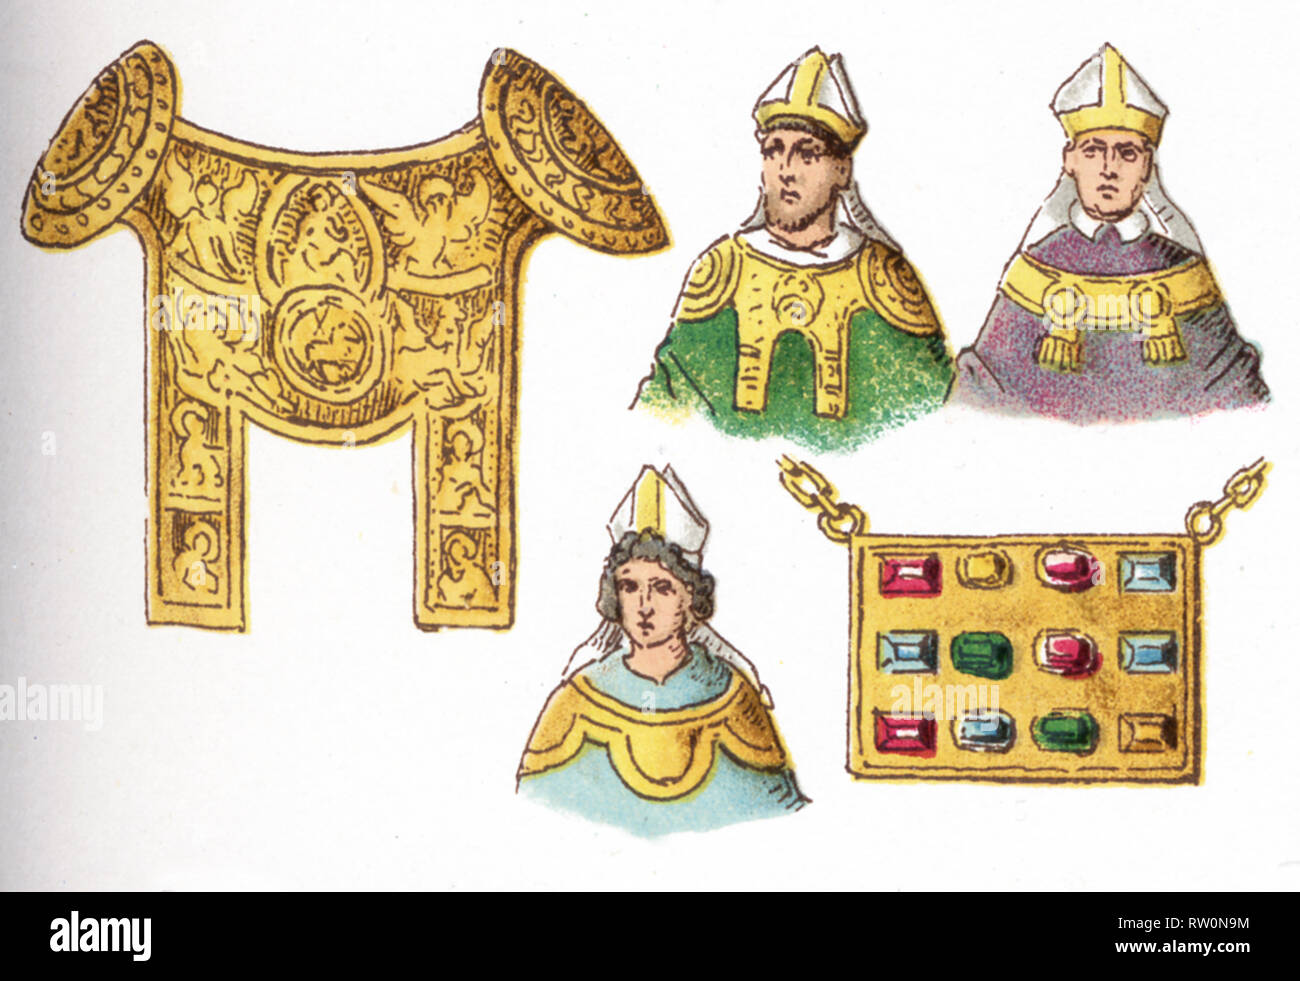 The illustrations shown here depict ecclesiastical costumes. They are, by row, from left to right, top to bottom: four Rationals (used by German bishops 12th-14the centuries and a Pectoral (worn 12th and 13th centuries). The illustration dates to 1882. - Stock Image